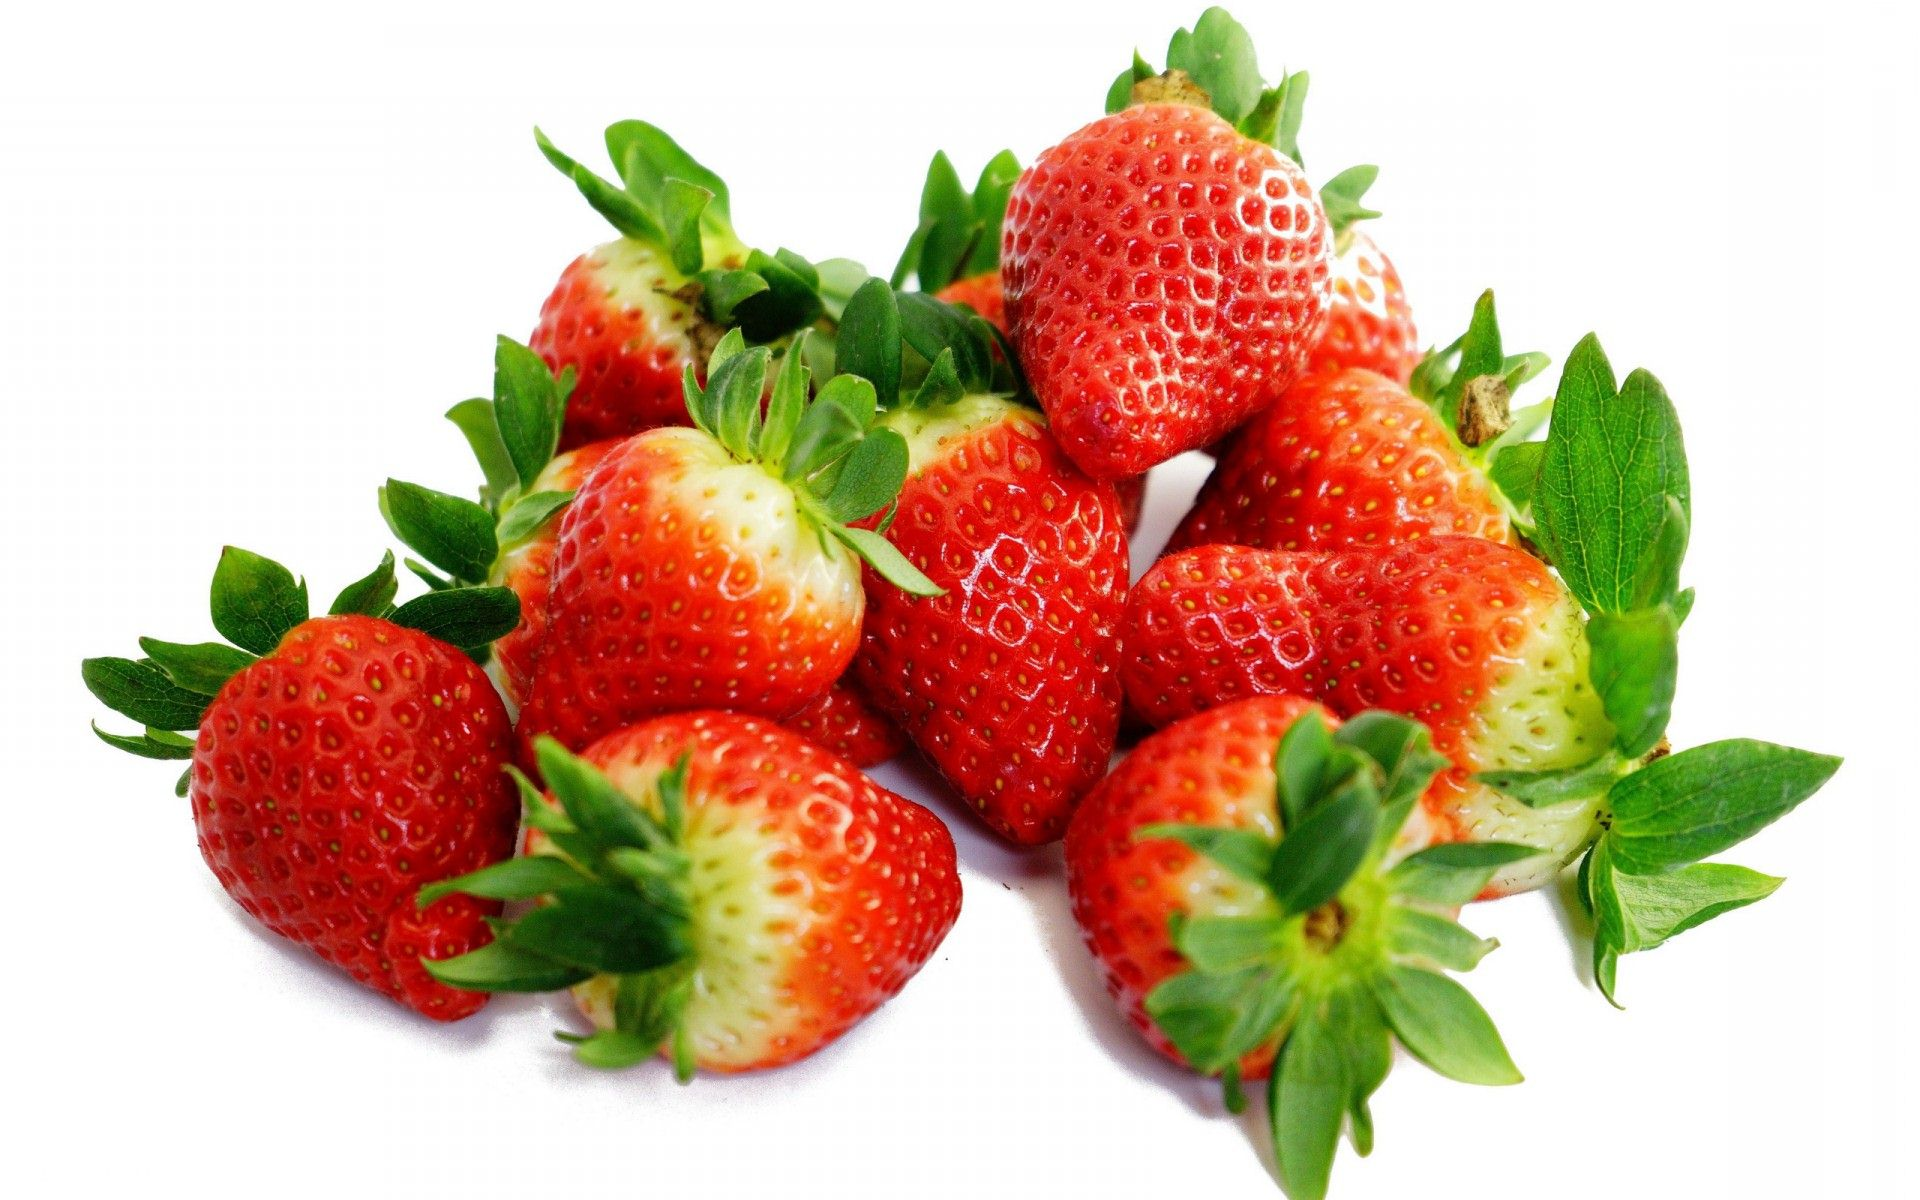 Strawberry Wallpapers 1920x1200